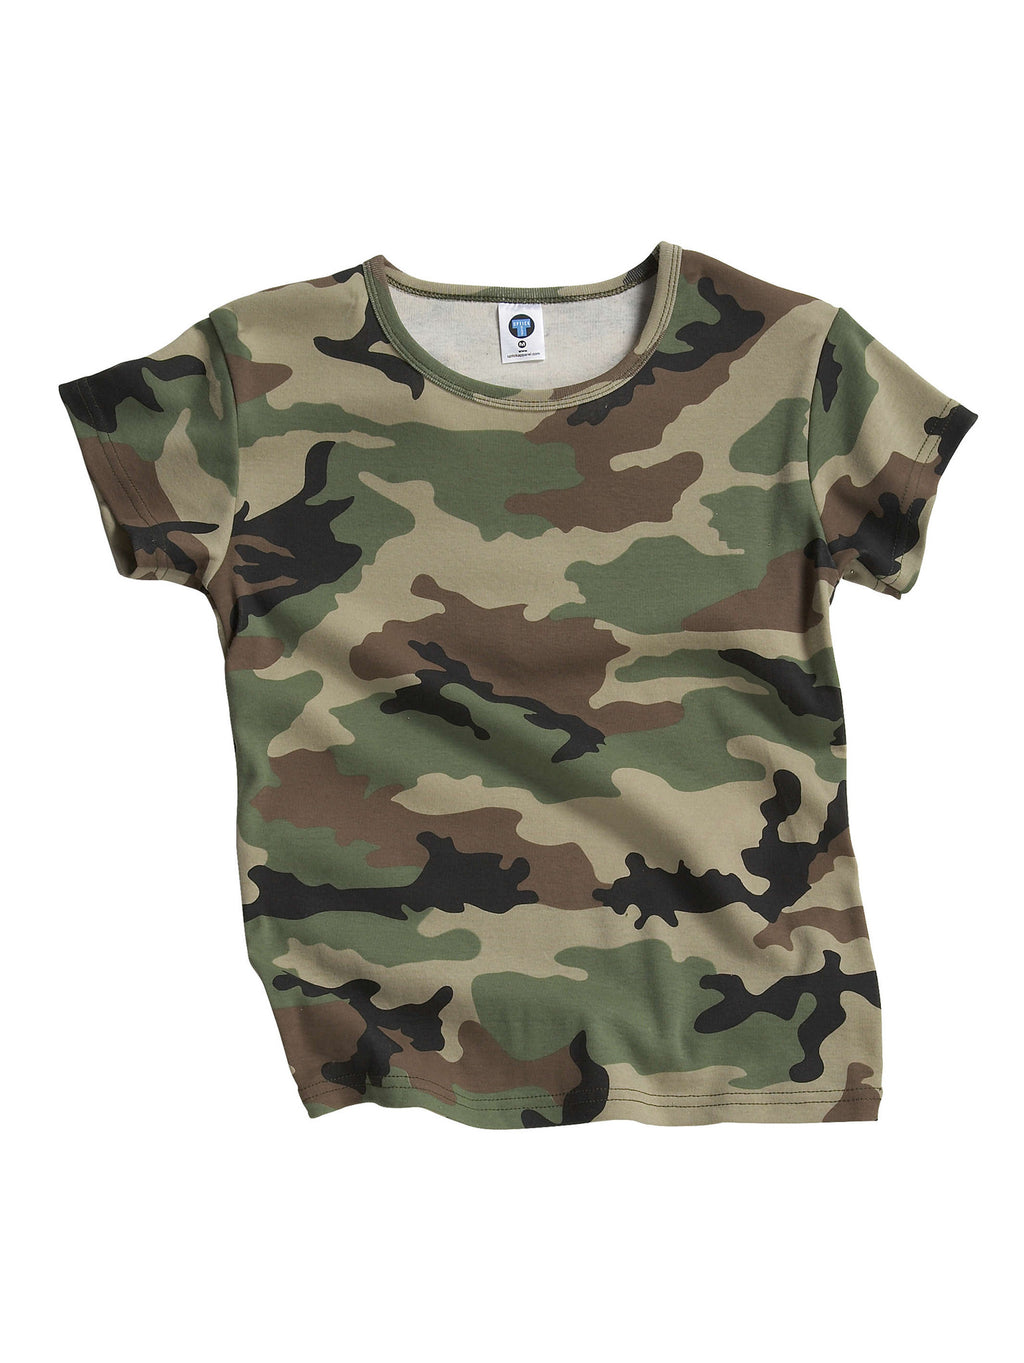 Ladies Camo Tee Size XL only